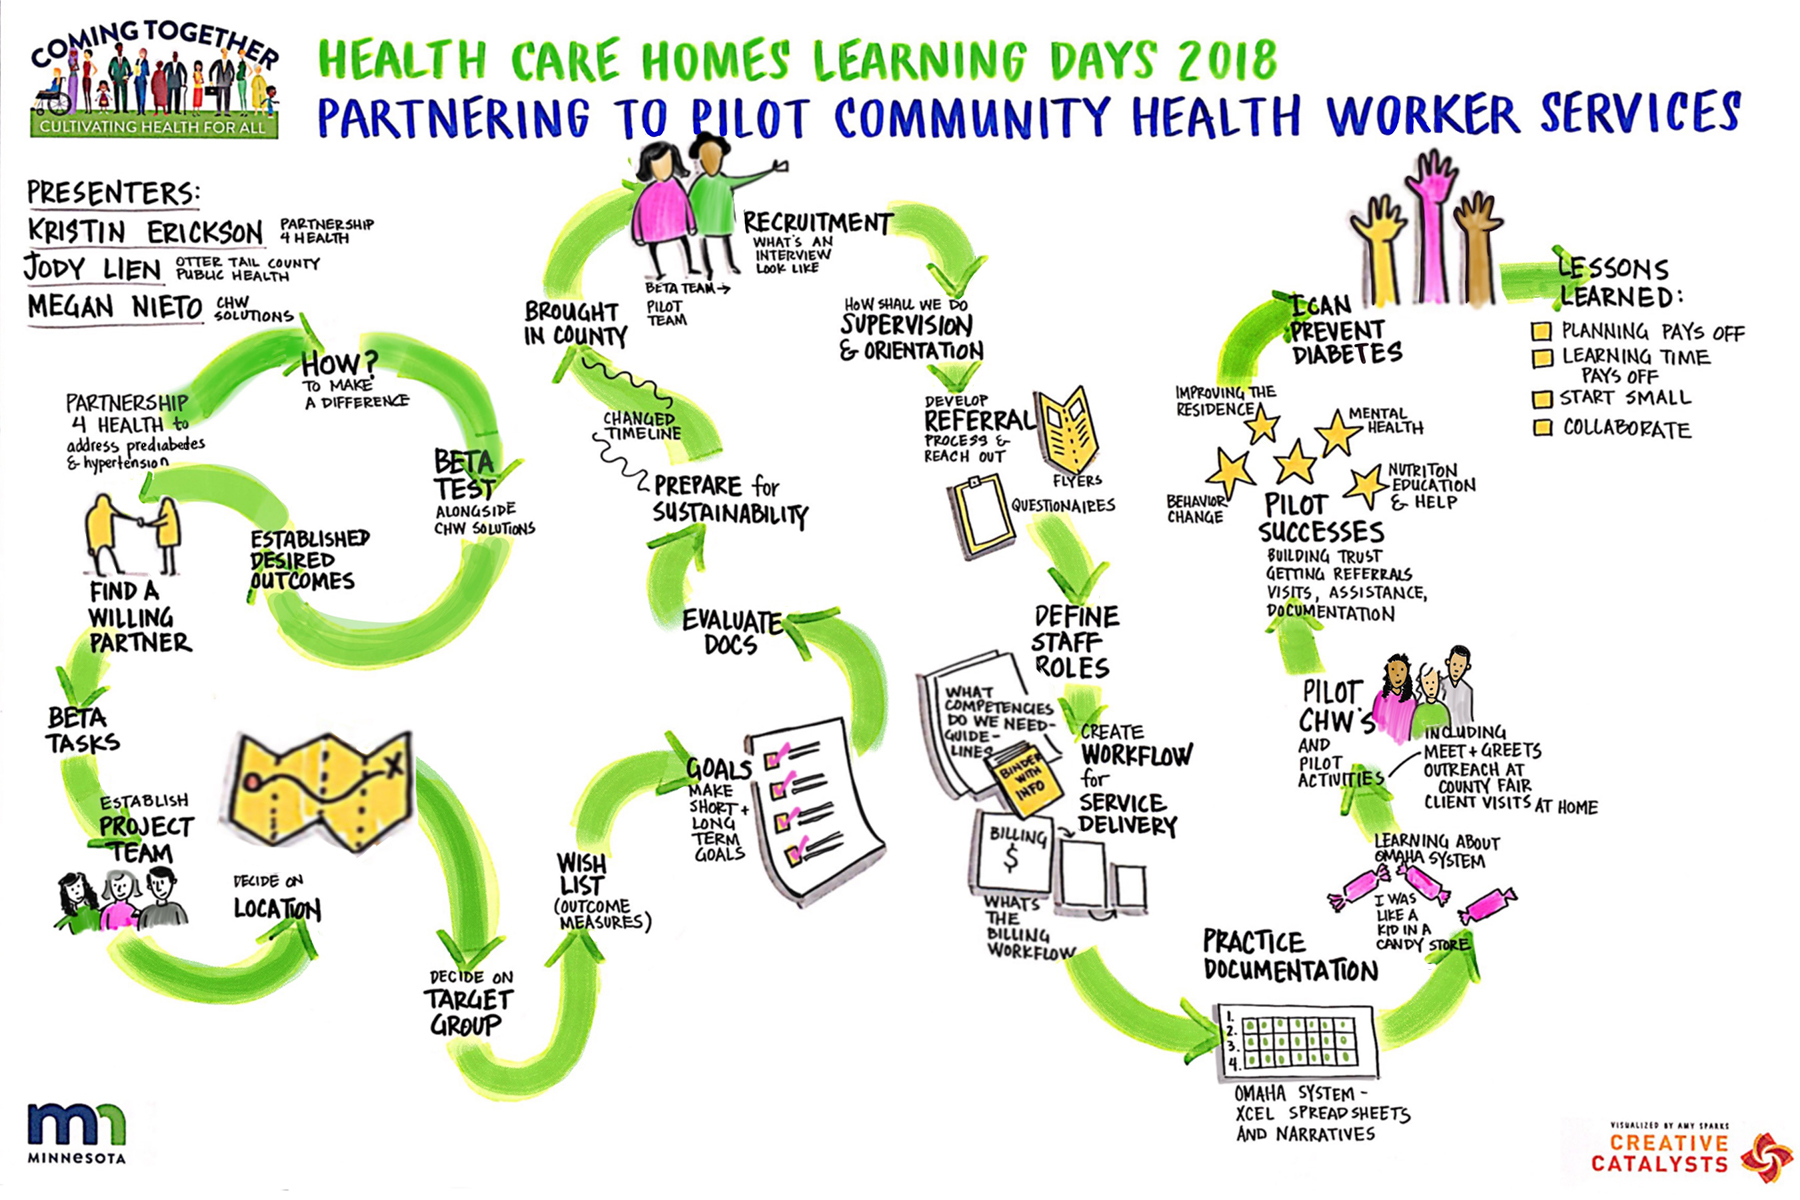 health care homes learning collaborative learning days event